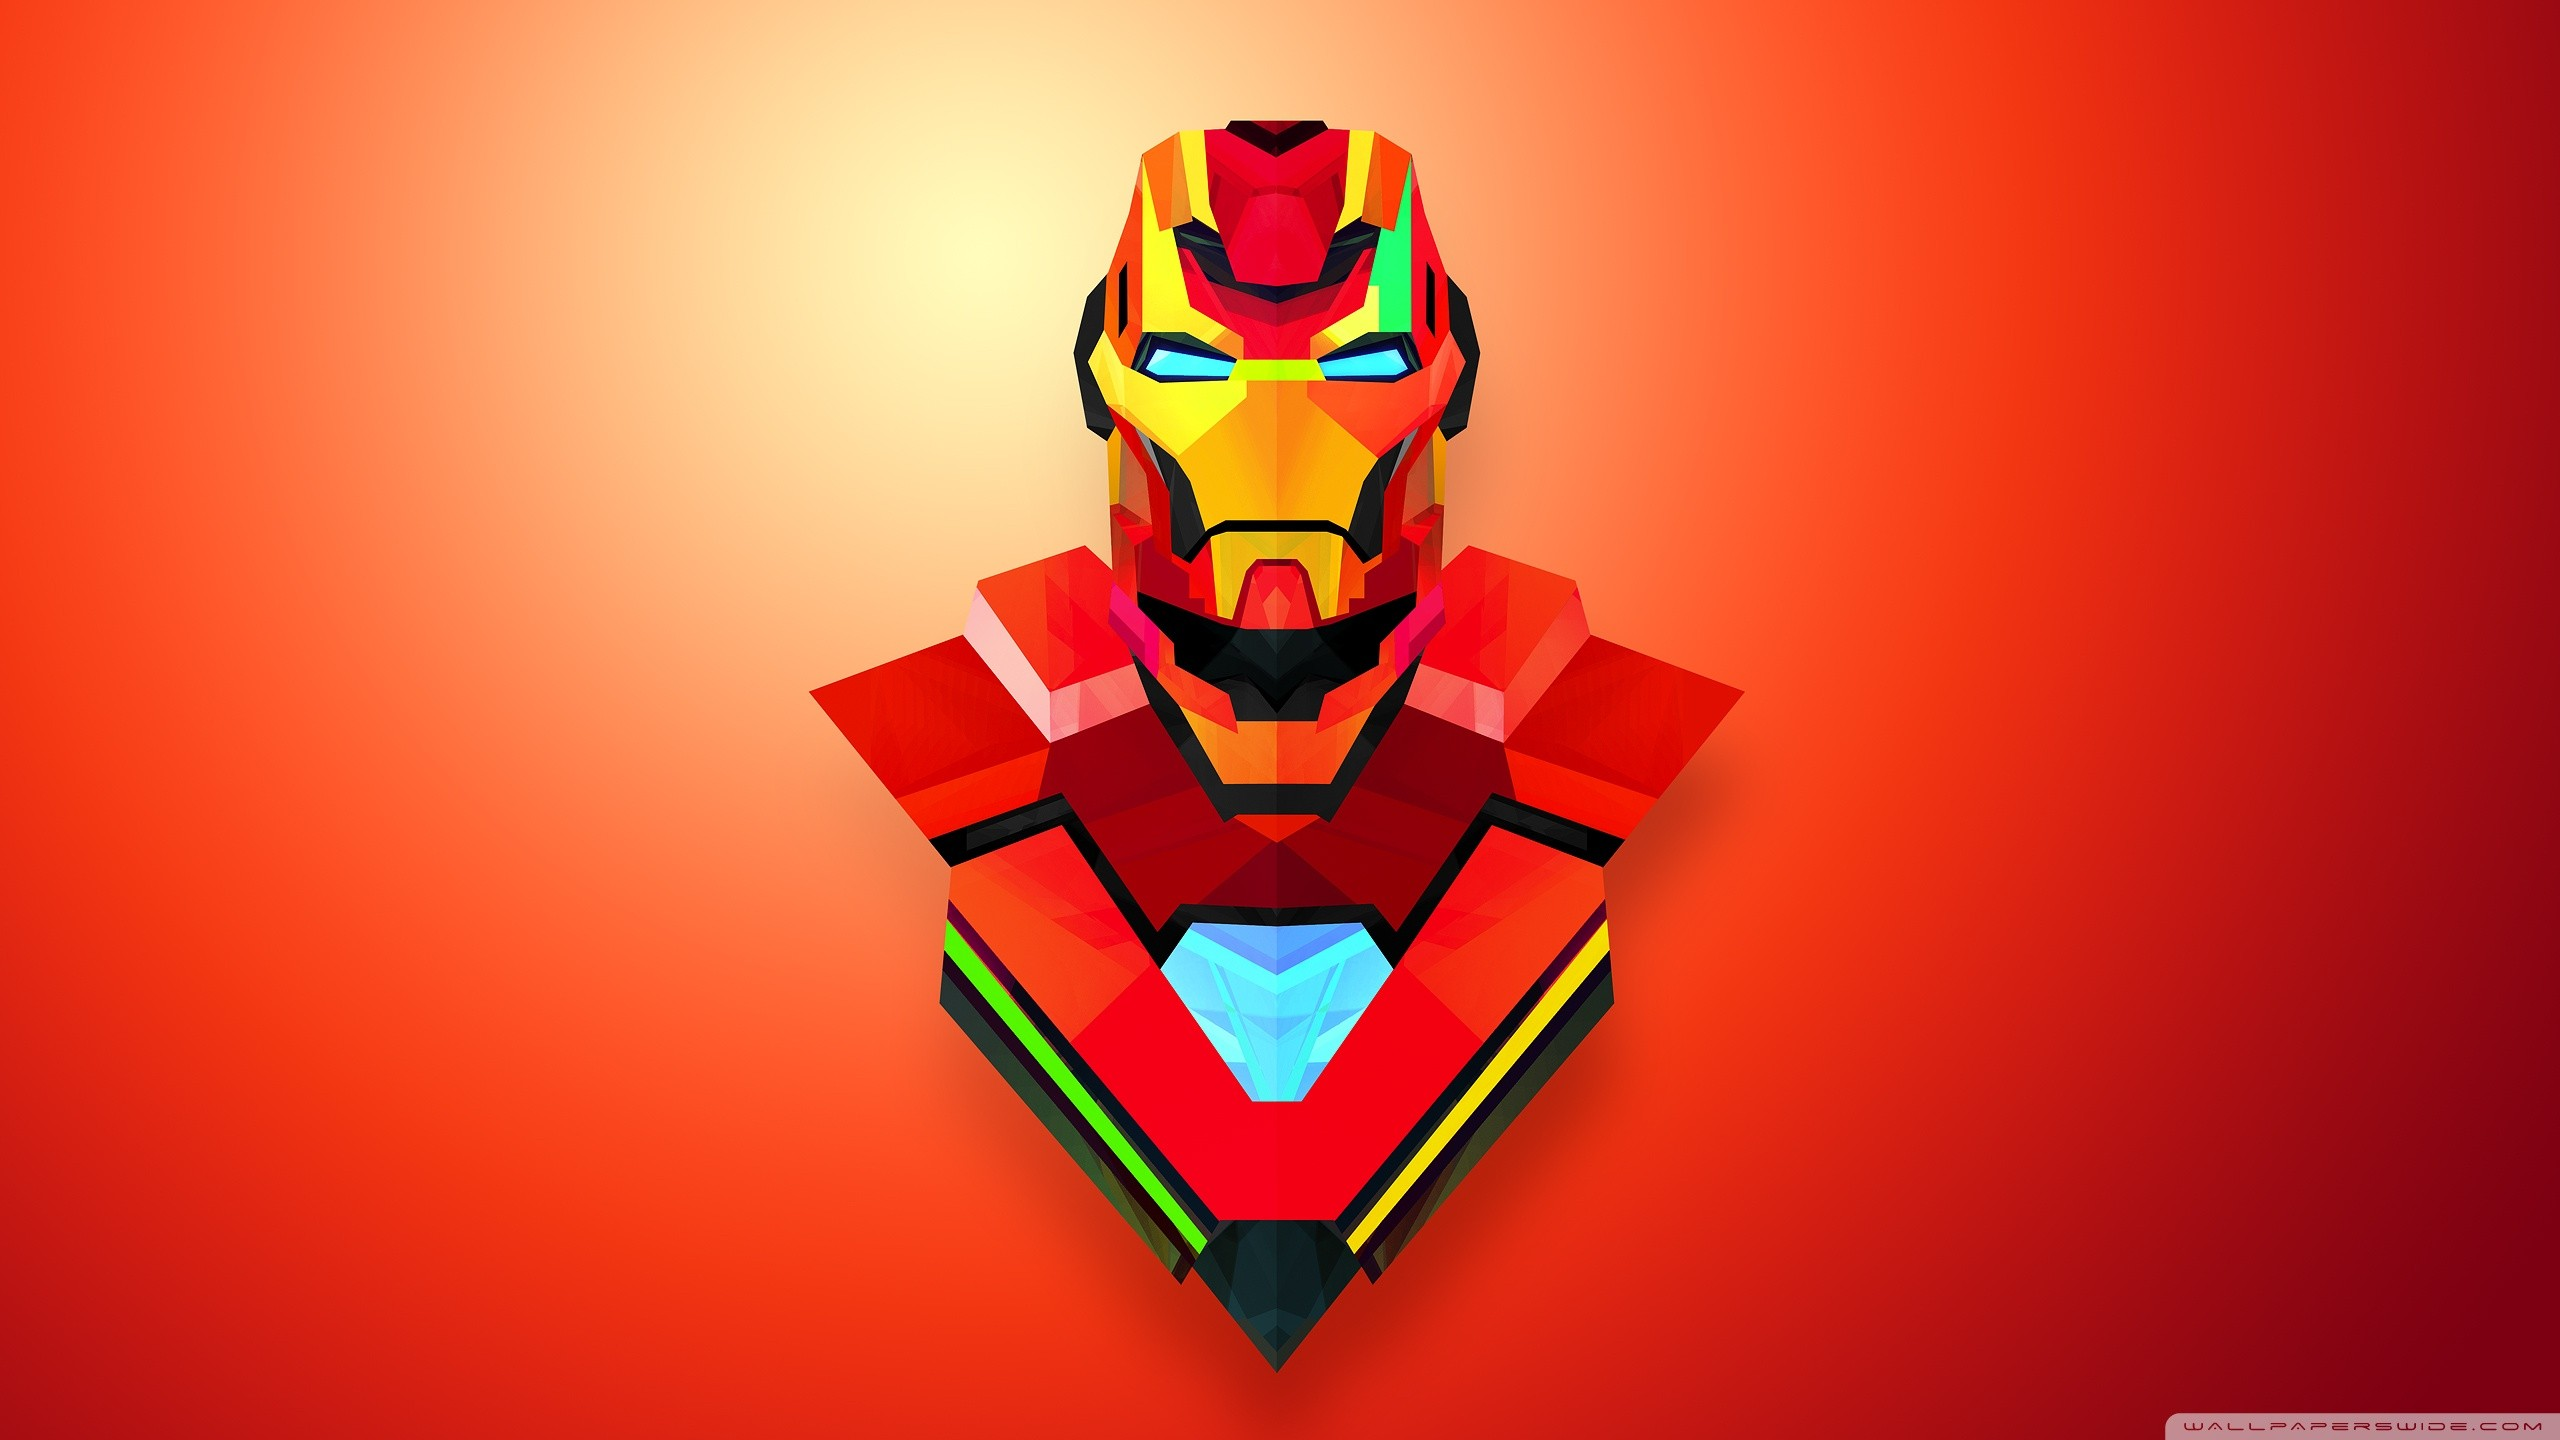 Ironman Wallpaper 1920x1080 4k